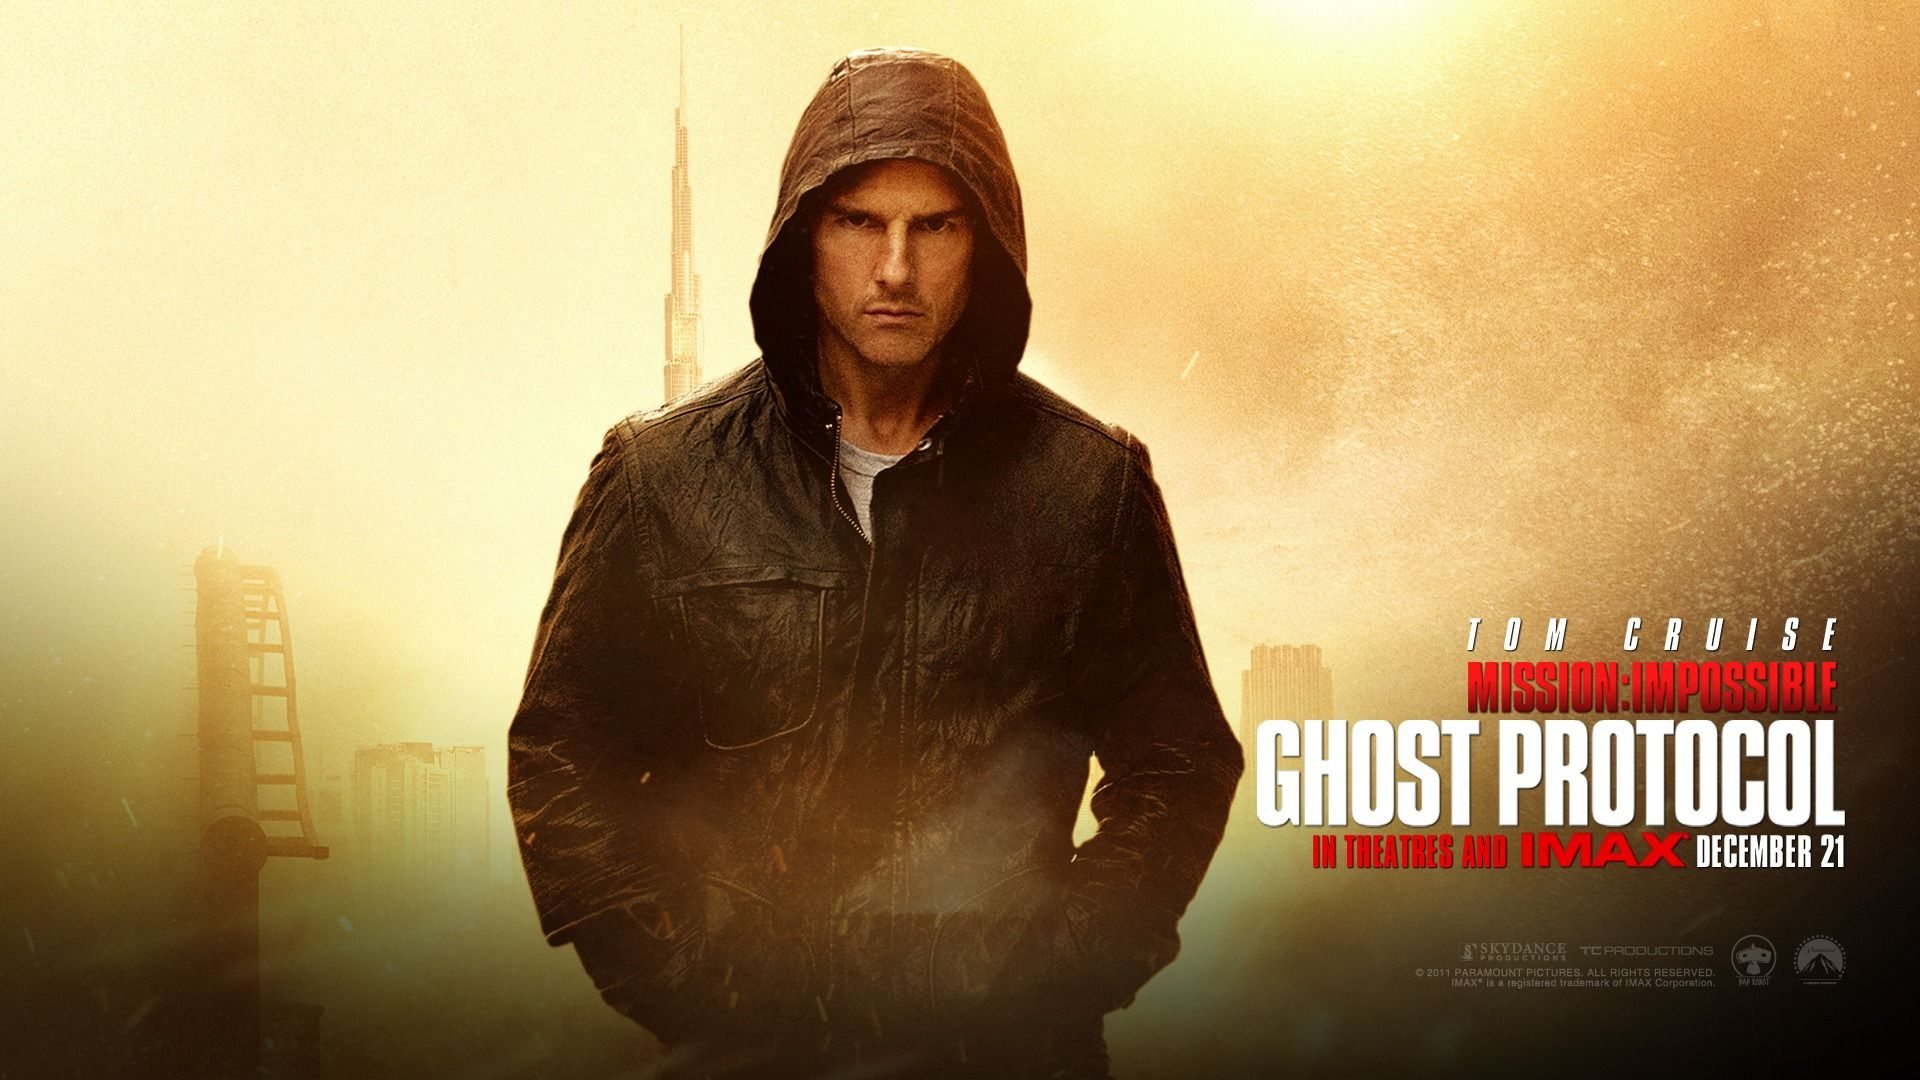 Tom Cruise In Mission Impossible 4 Movies Wallpapers Download Free Tom Cruise In Mission Impossible 4 Mo Tom Cruise Mission Impossible Ghost Tom Cruise Movies